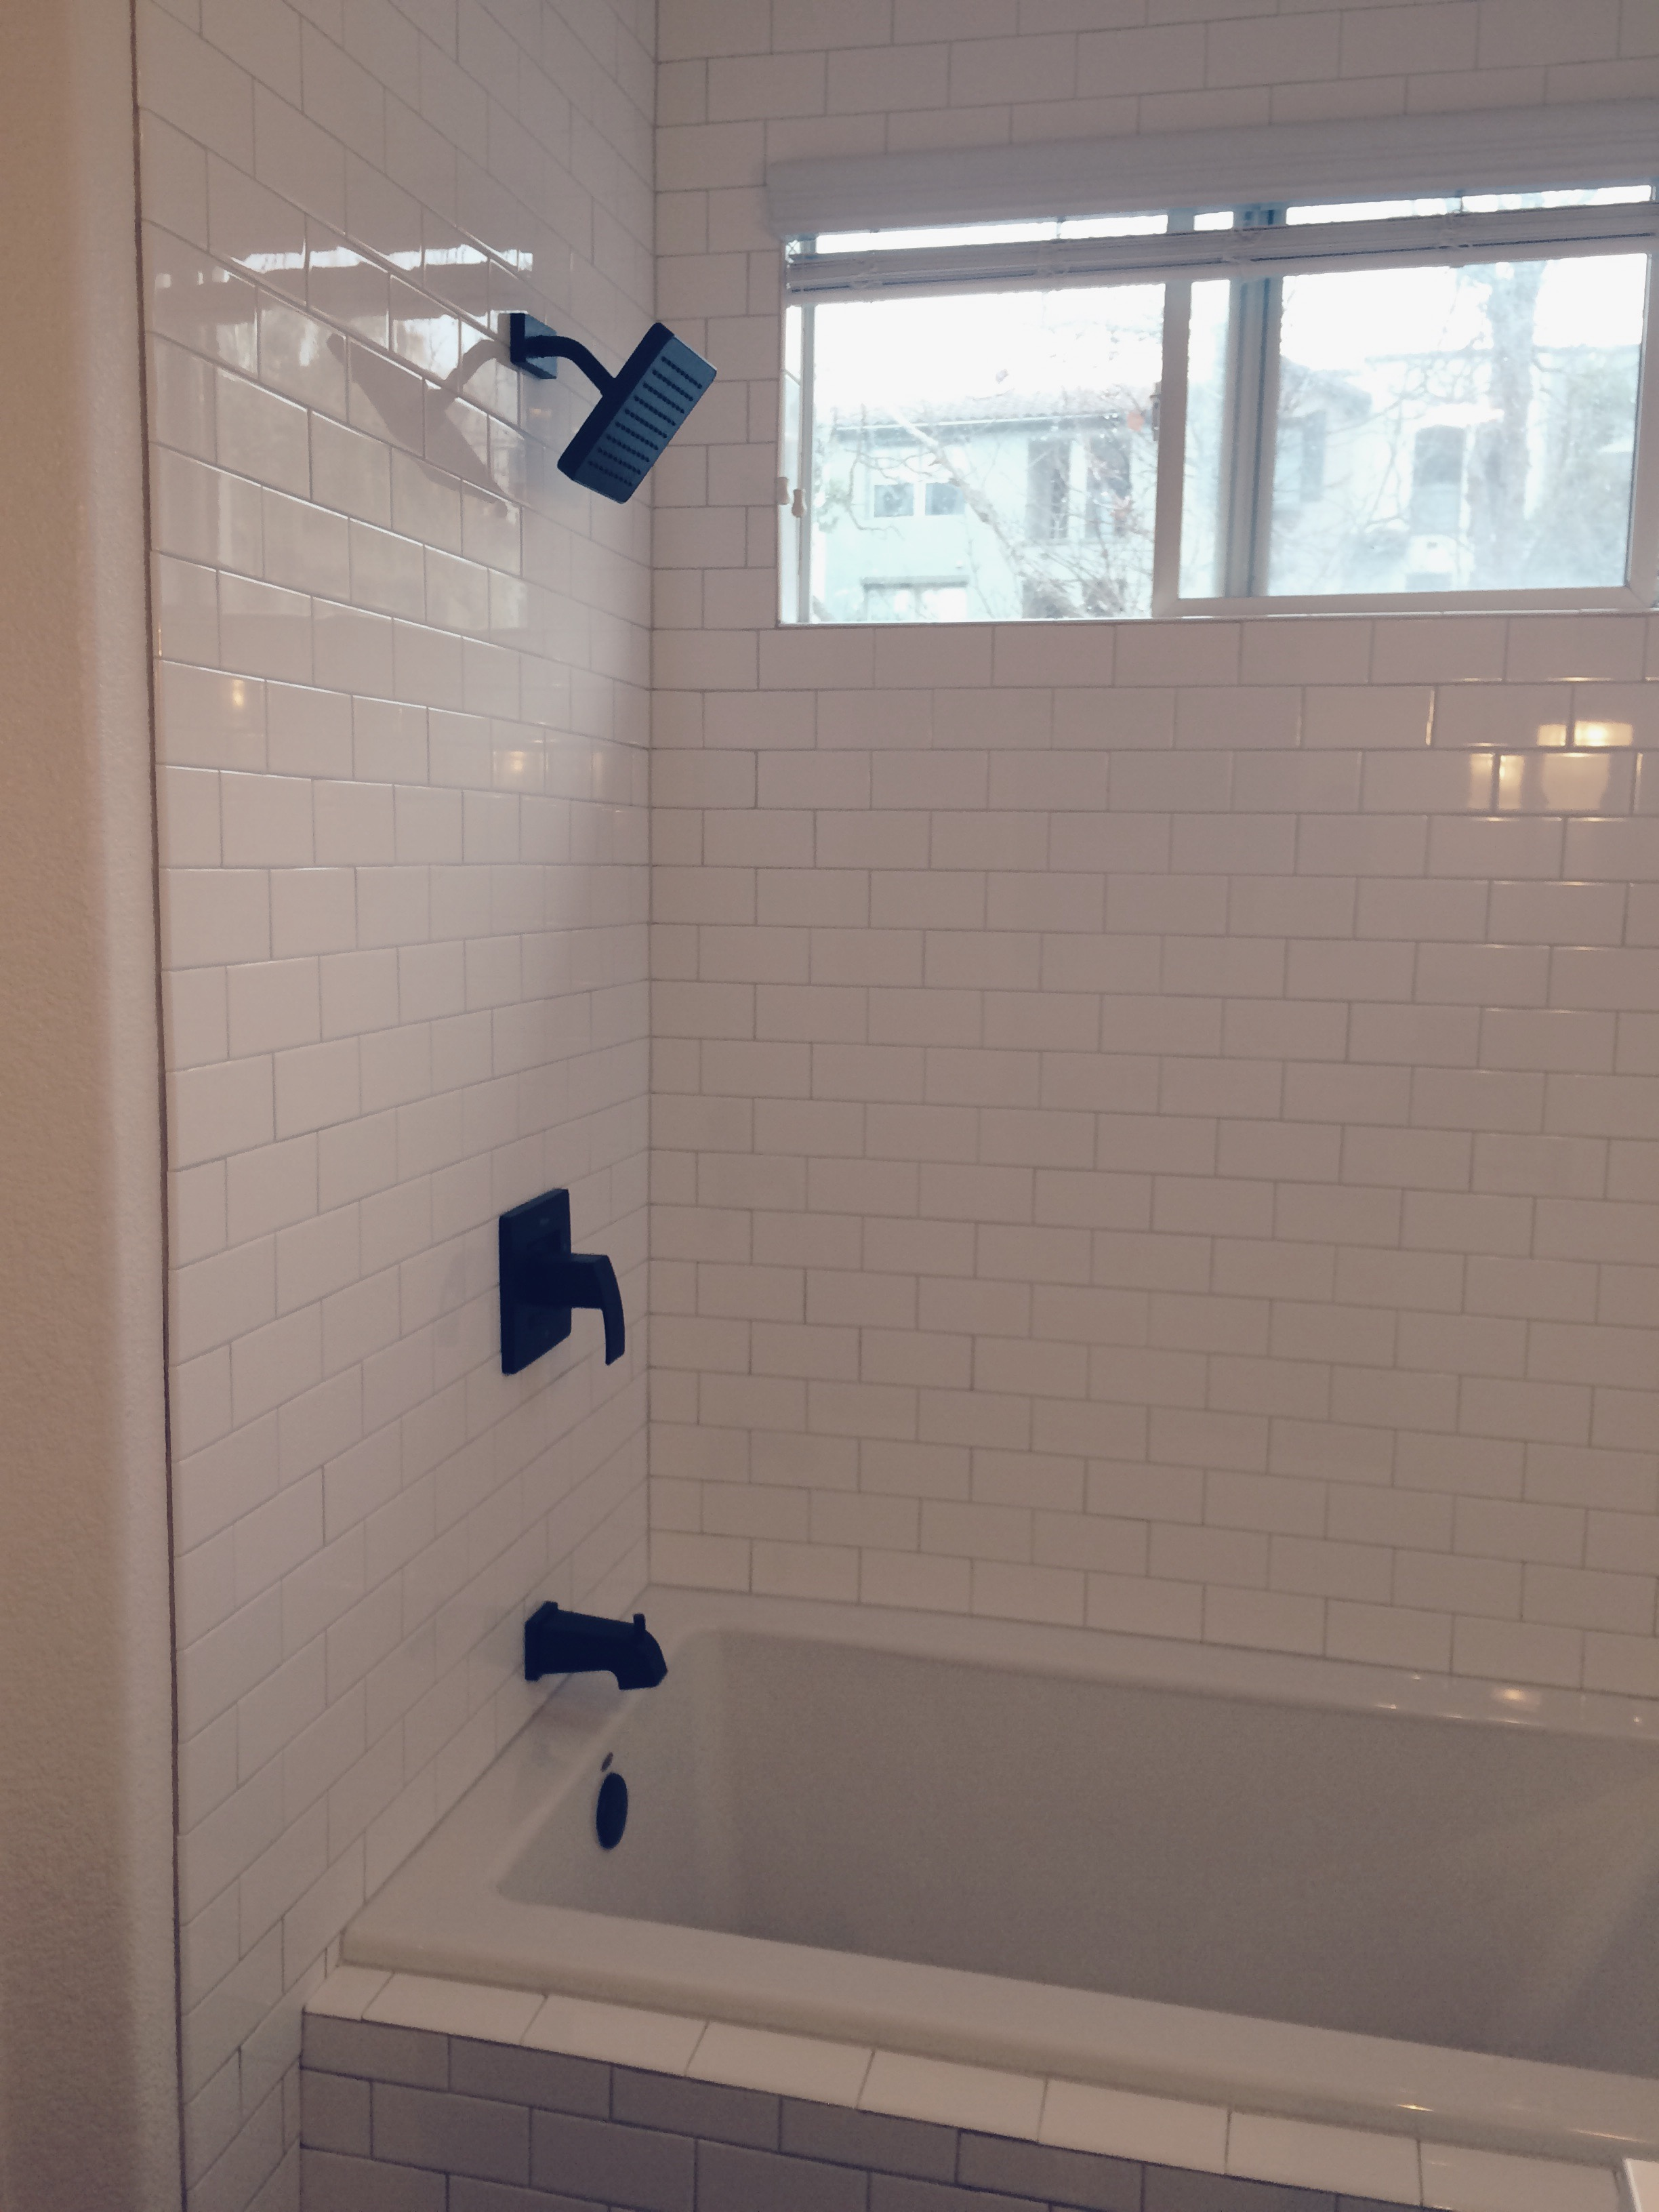 Lessons Learned from a Bathroom Remodel  How to Stay on